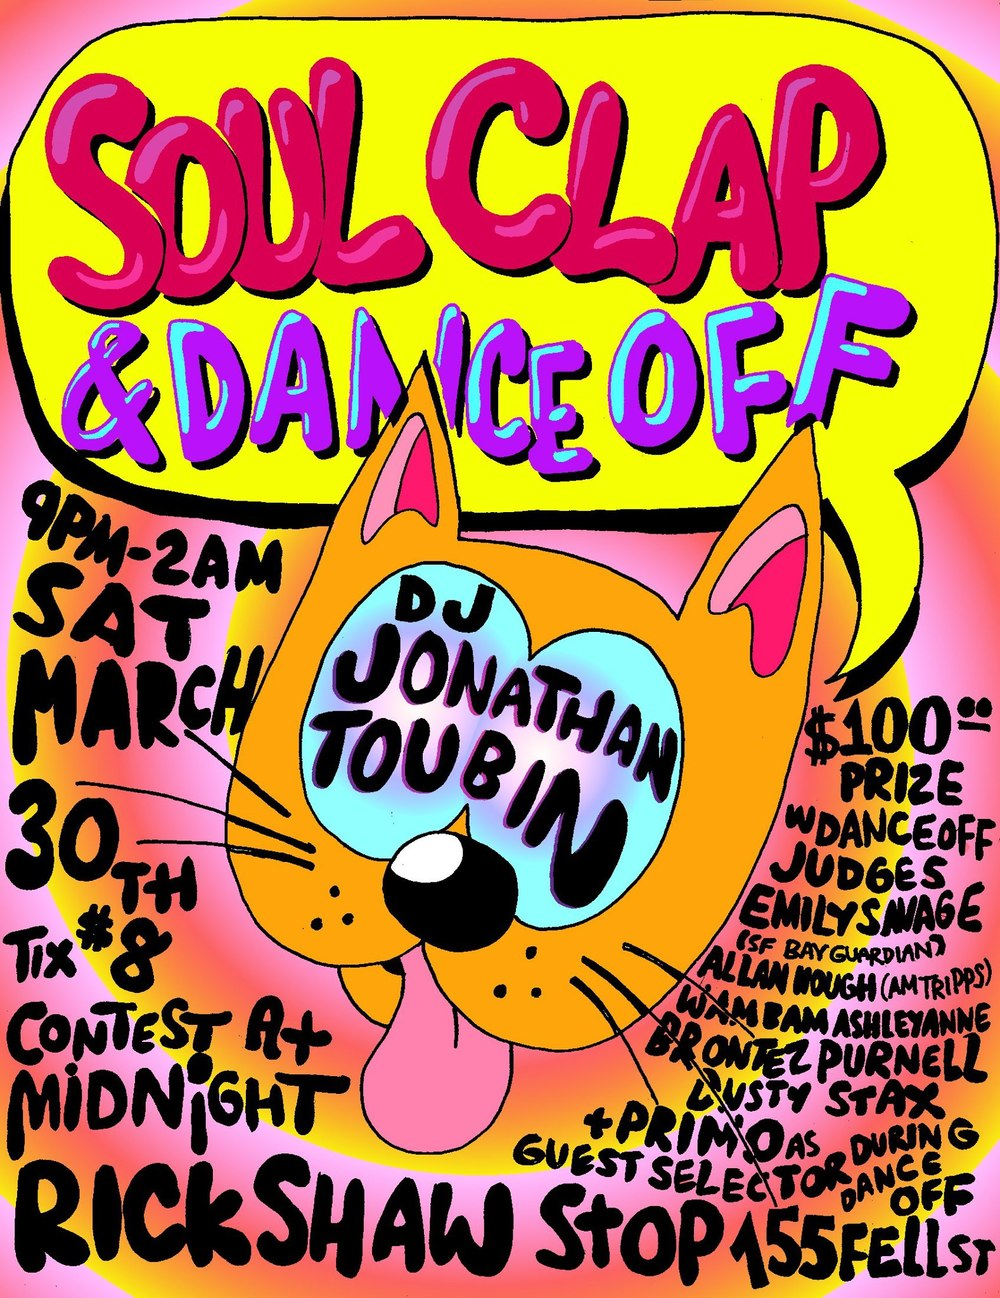 SF Soul Clap March 2013 Flyer.jpg